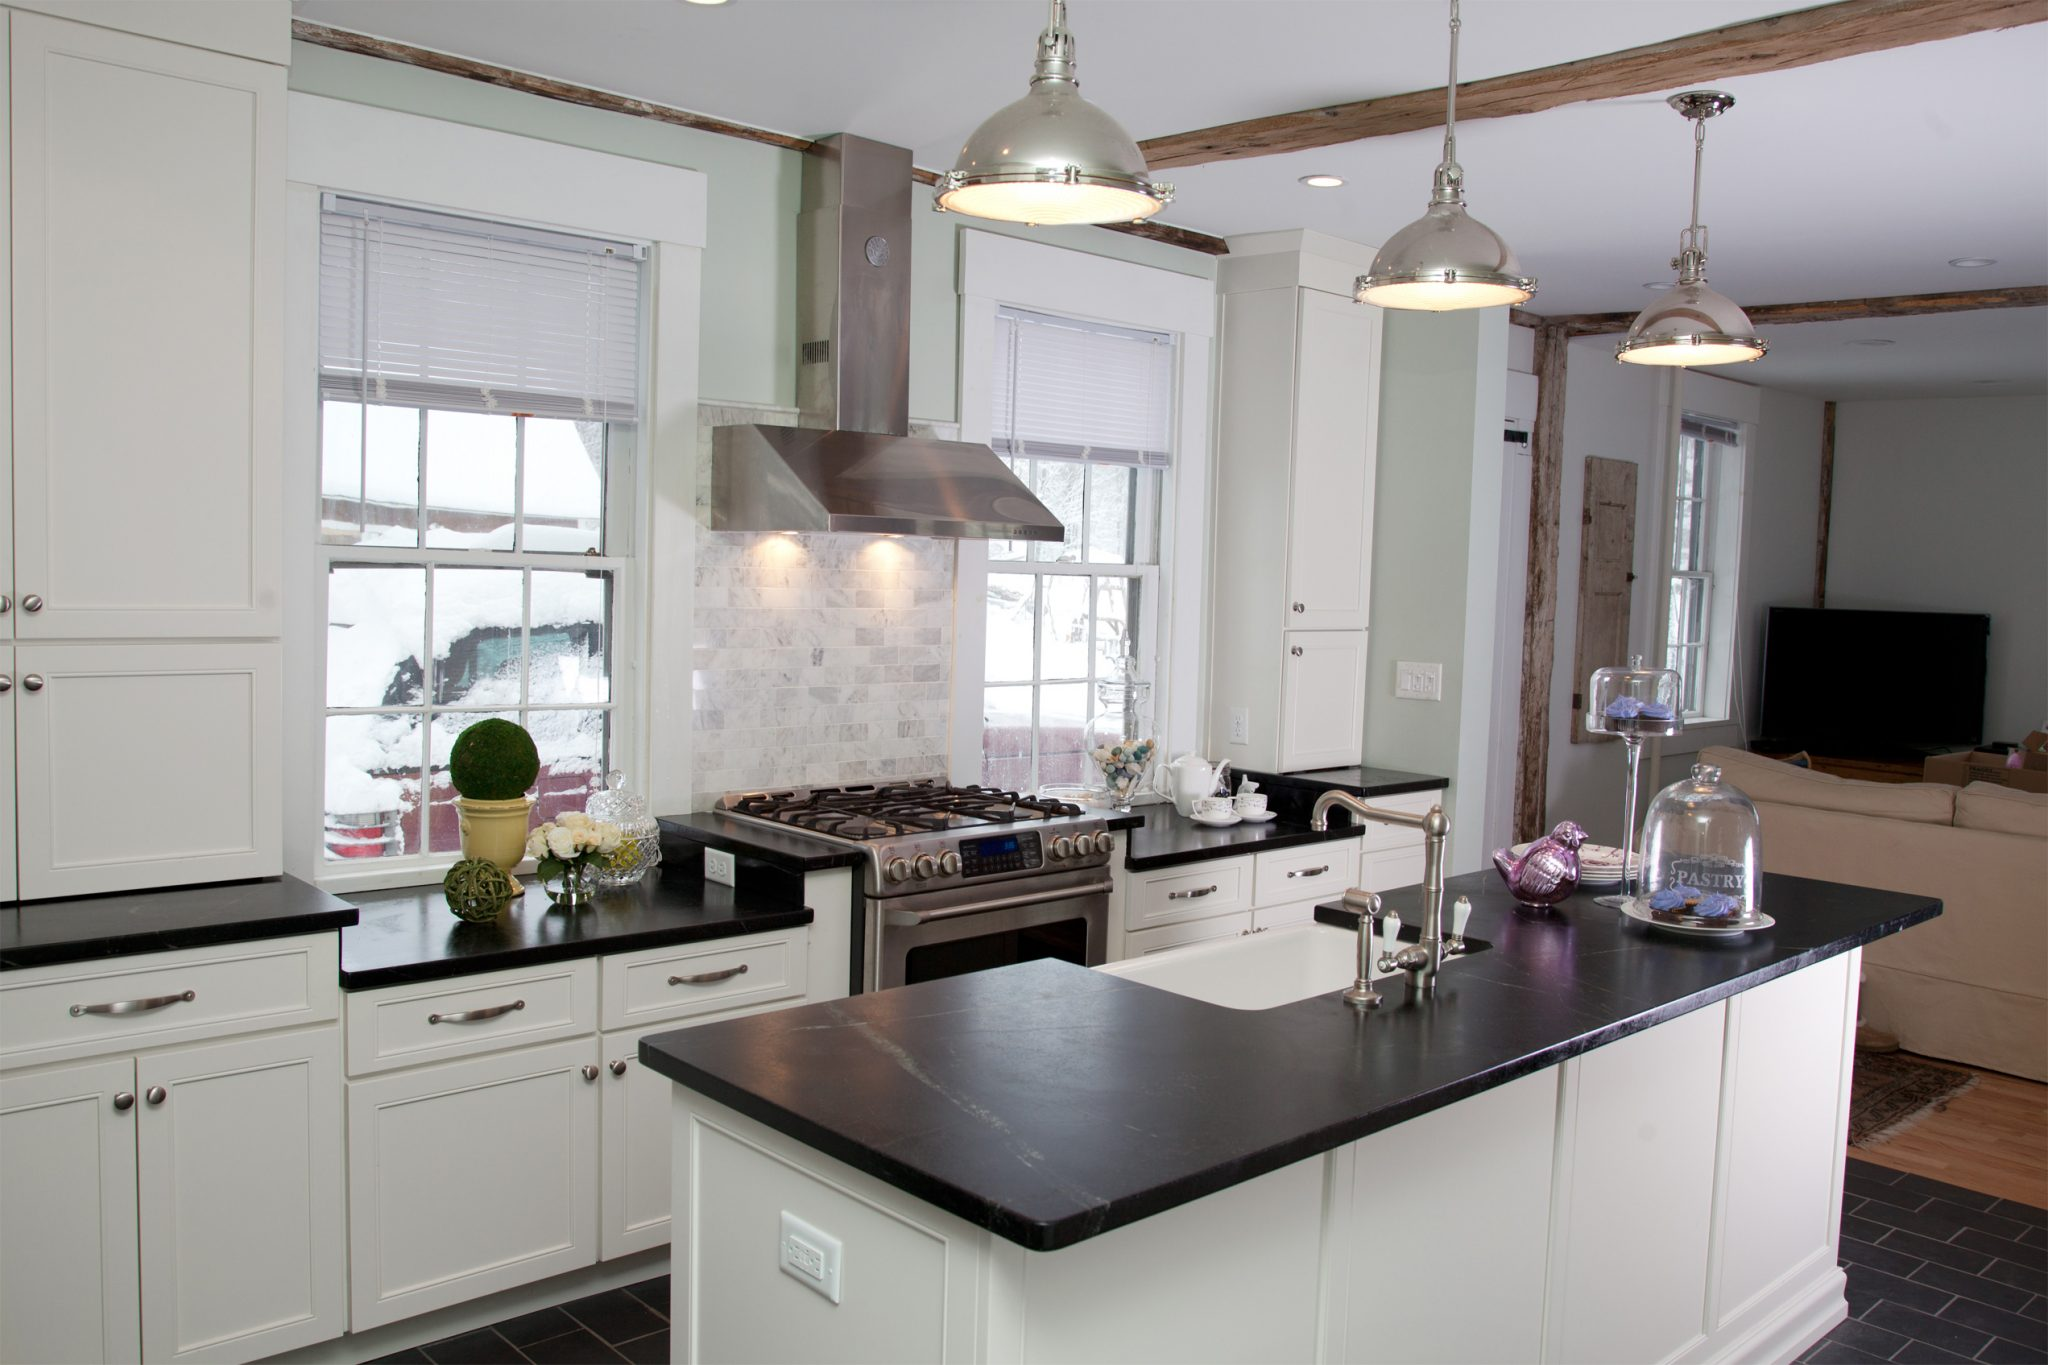 Traditional Kitchen Renovation in Derry, NH